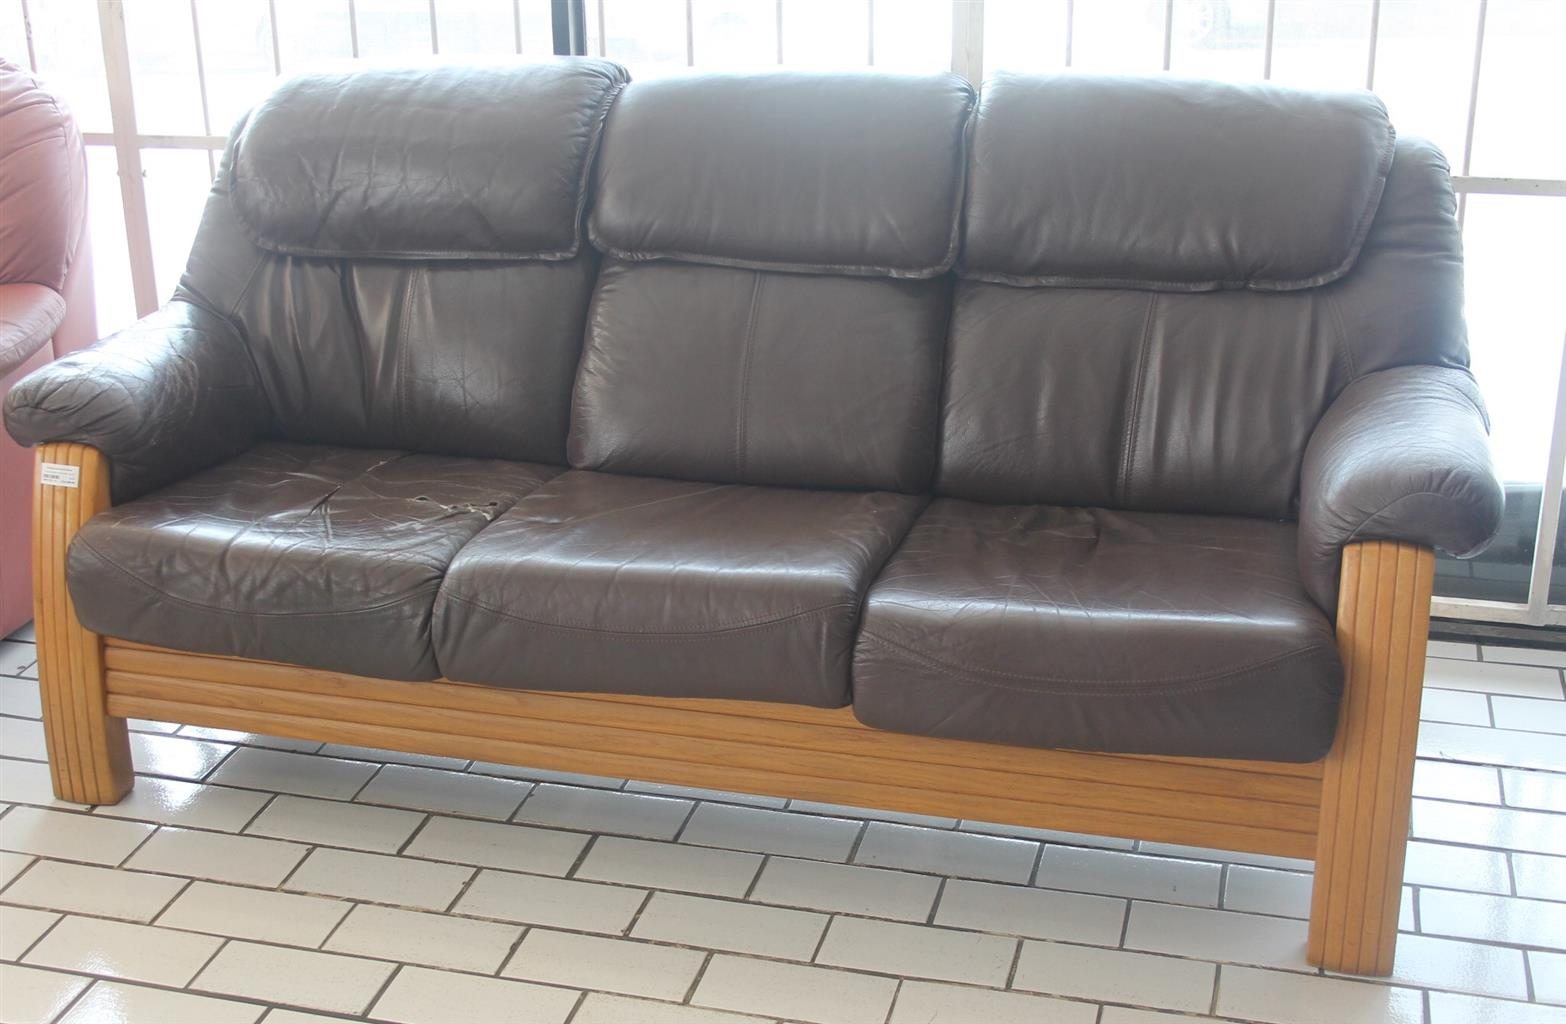 3 Piece brown leather couch S046111B #Rosettenvillepawnshop